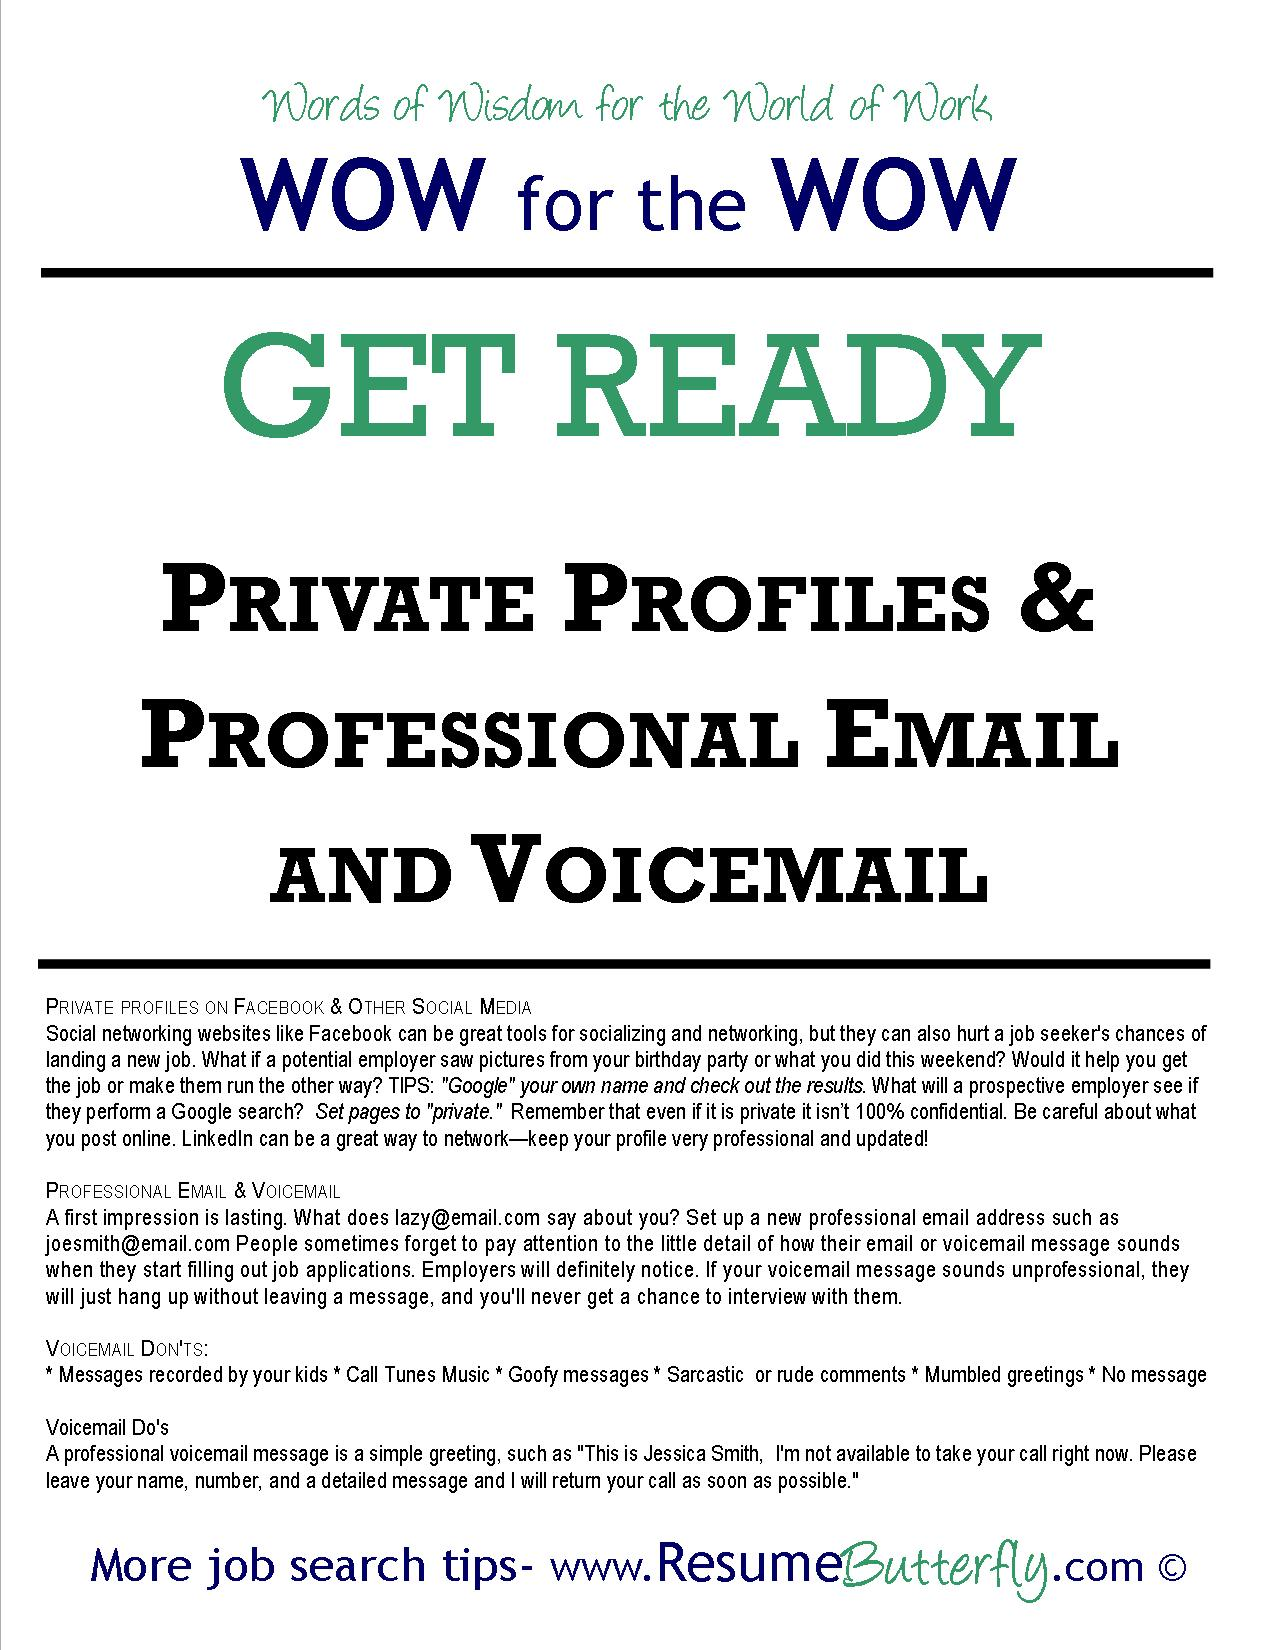 Wow for the wow words of wisdom for the world of work archives job search preparation job search skills resume butterfly get ready private profiles m4hsunfo Gallery